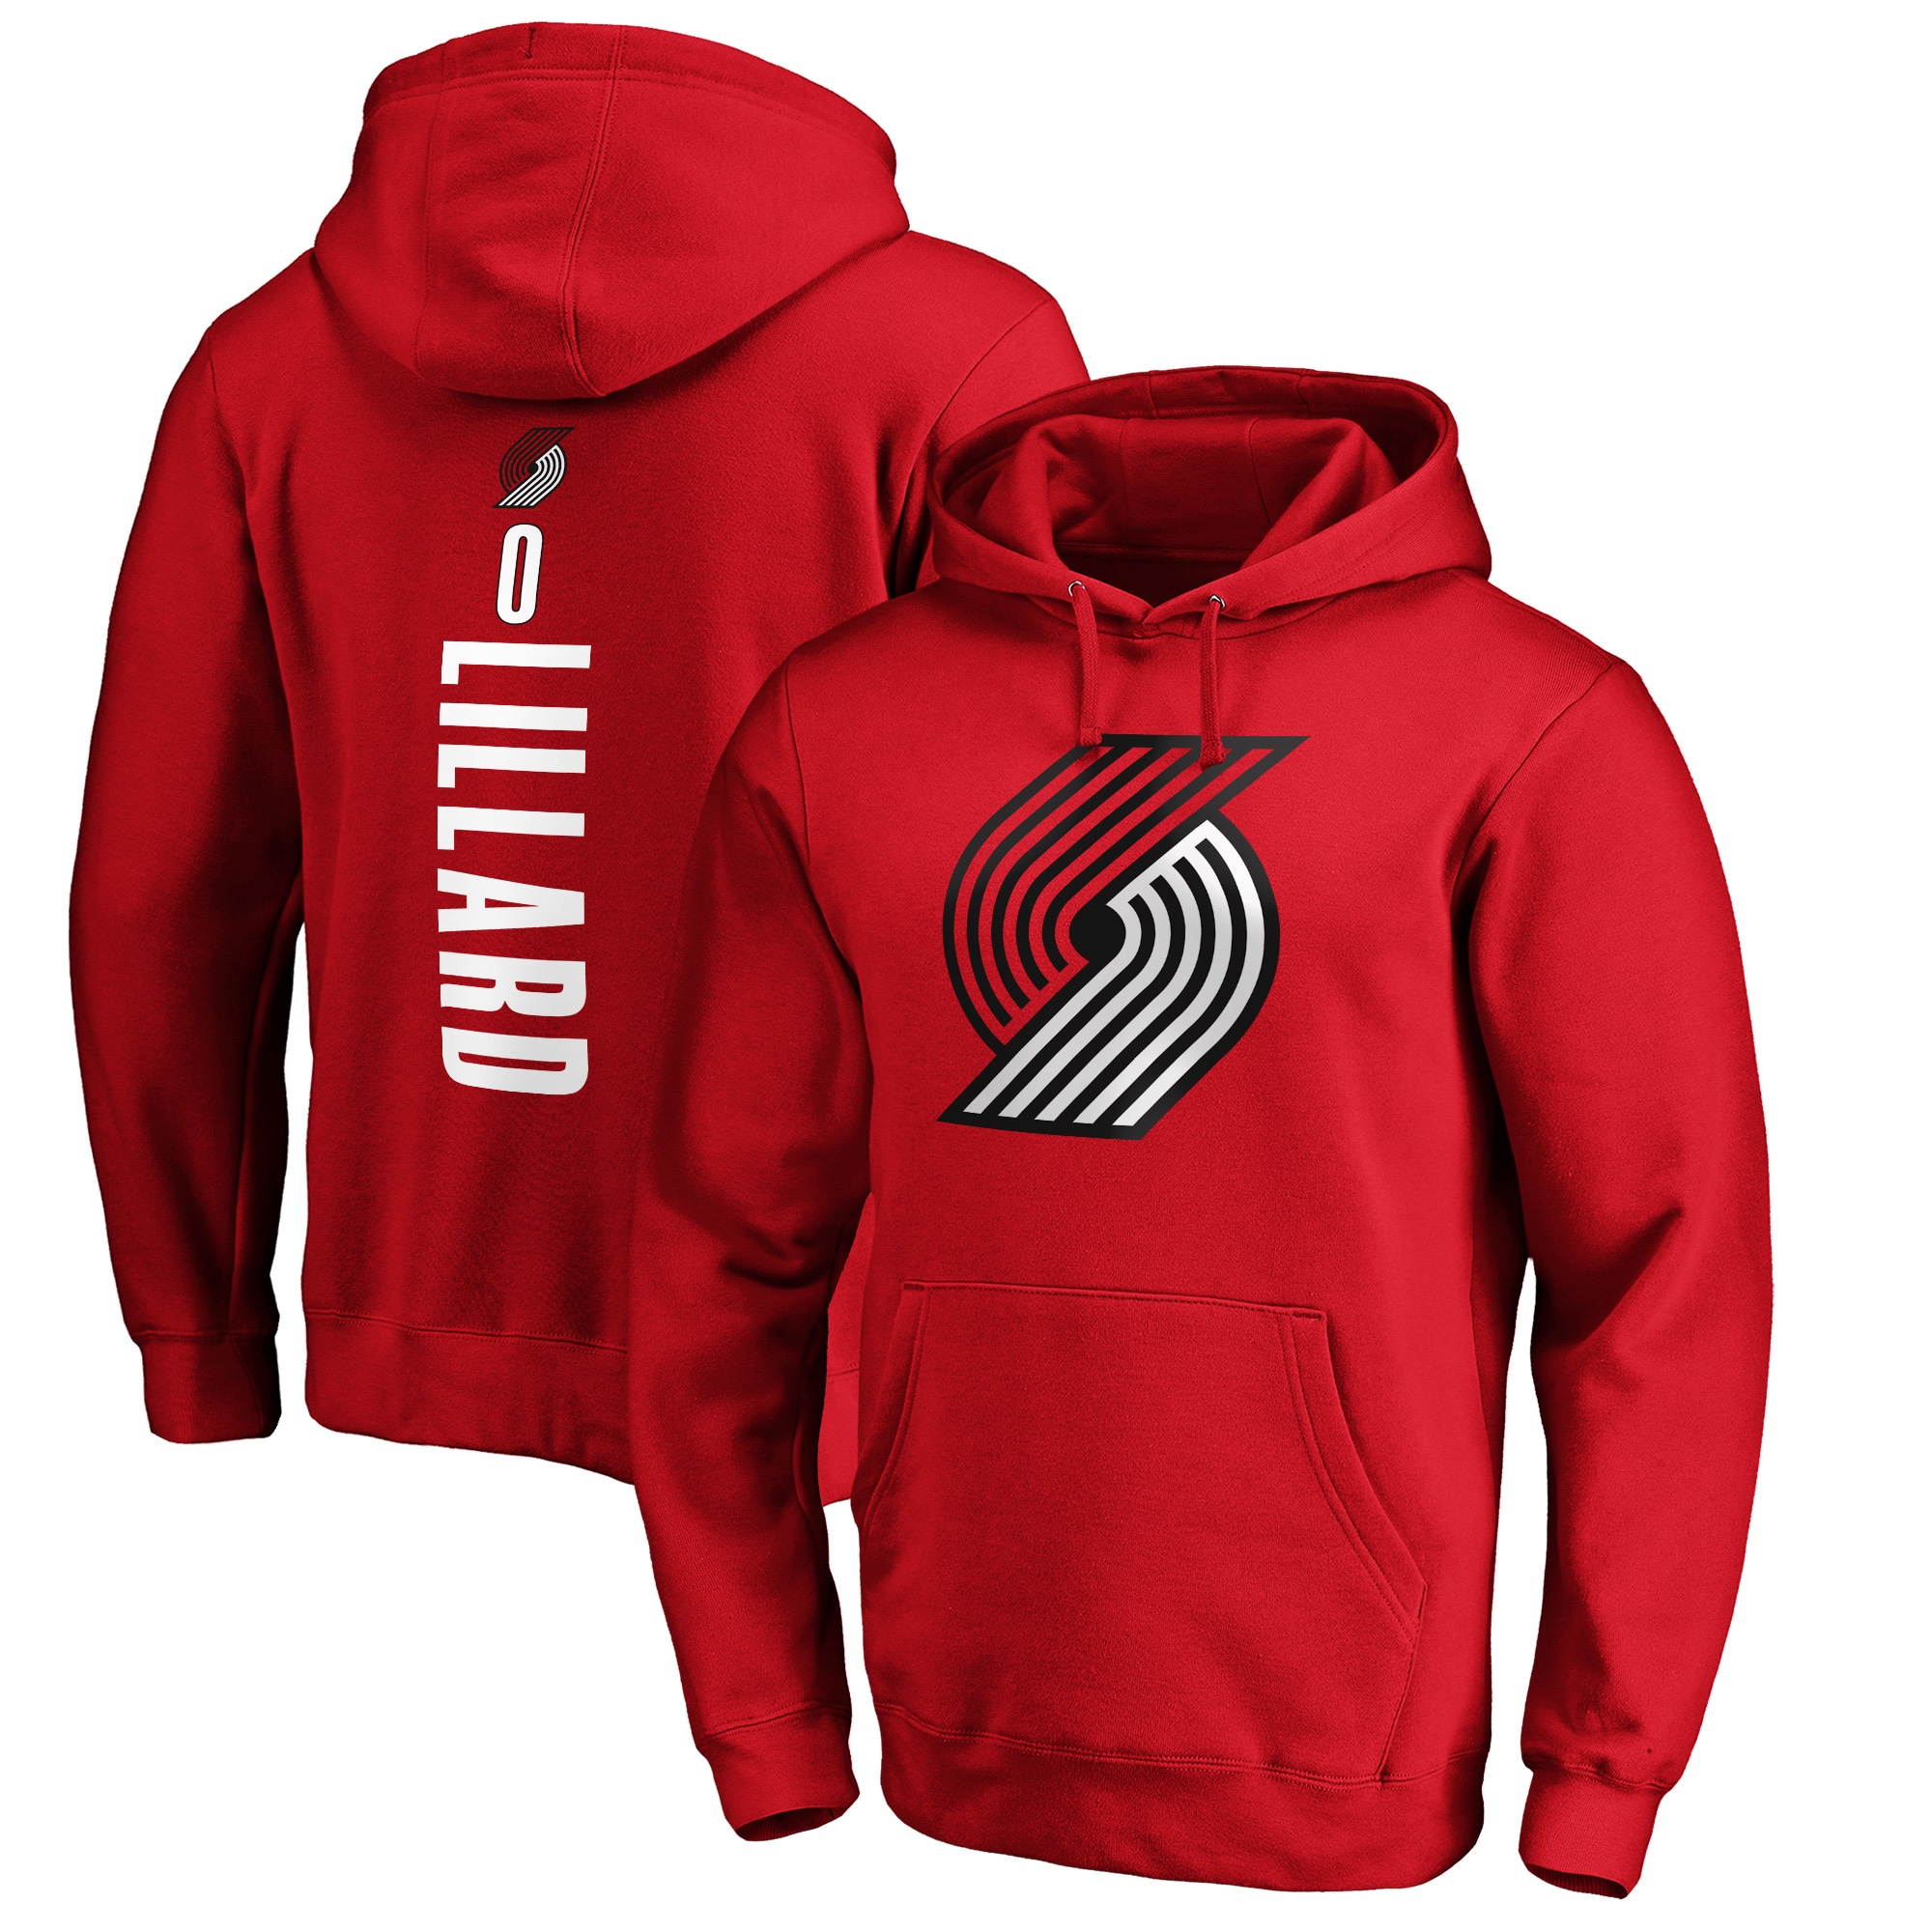 Damian Lillard Portland Trail Blazers Fanatics Branded Playmaker Name & Number Pullover Hoodie - Red